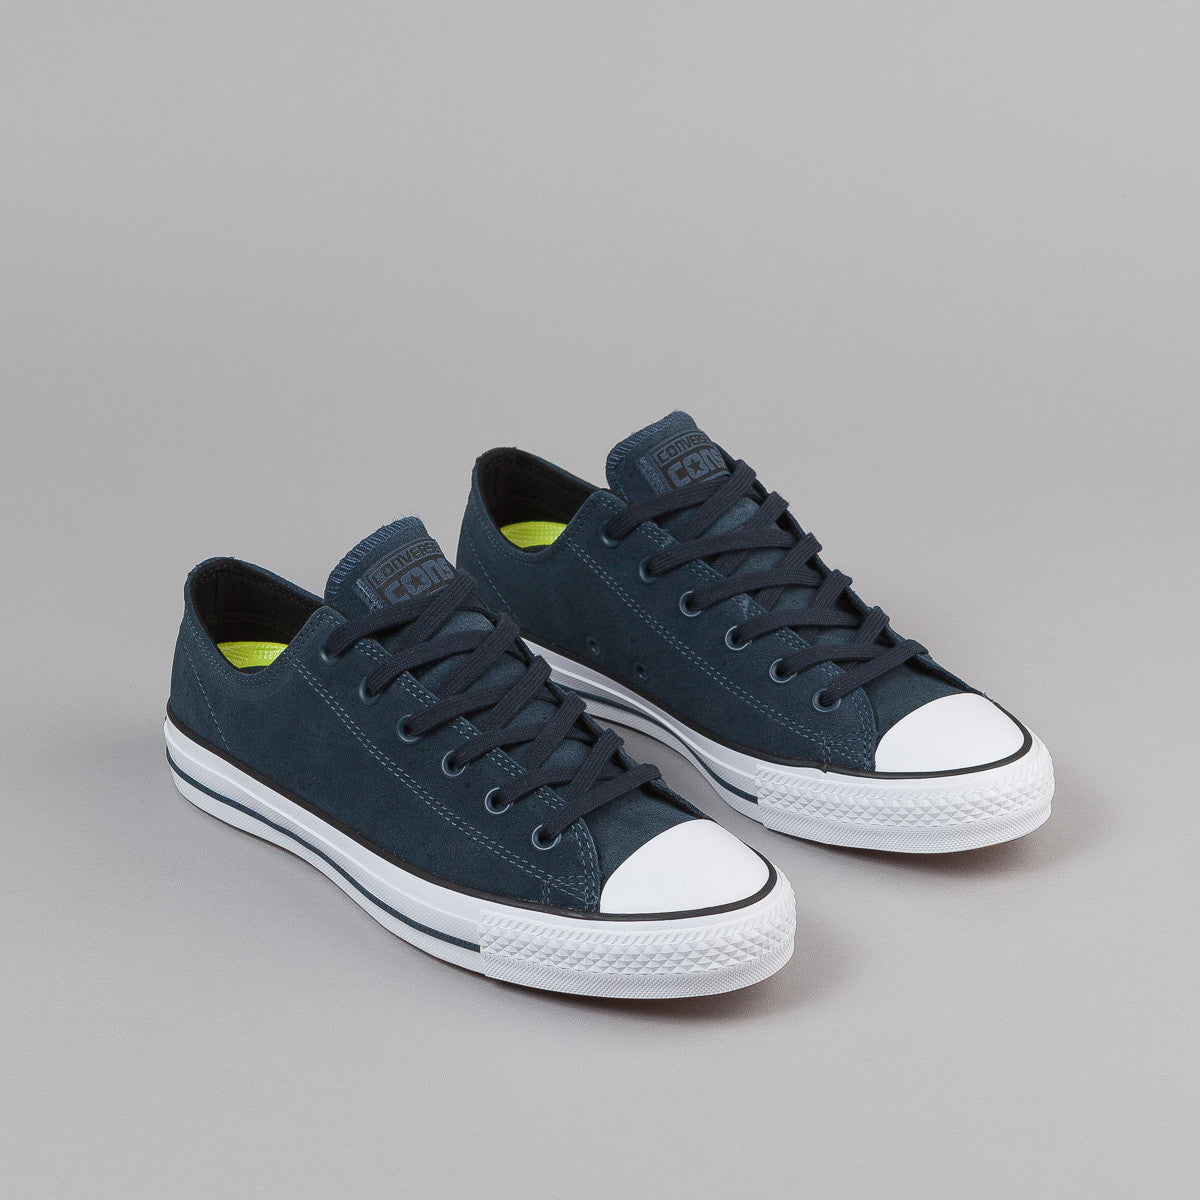 Converse CTAS Pro OX Shoes - Steel Can / Black / White